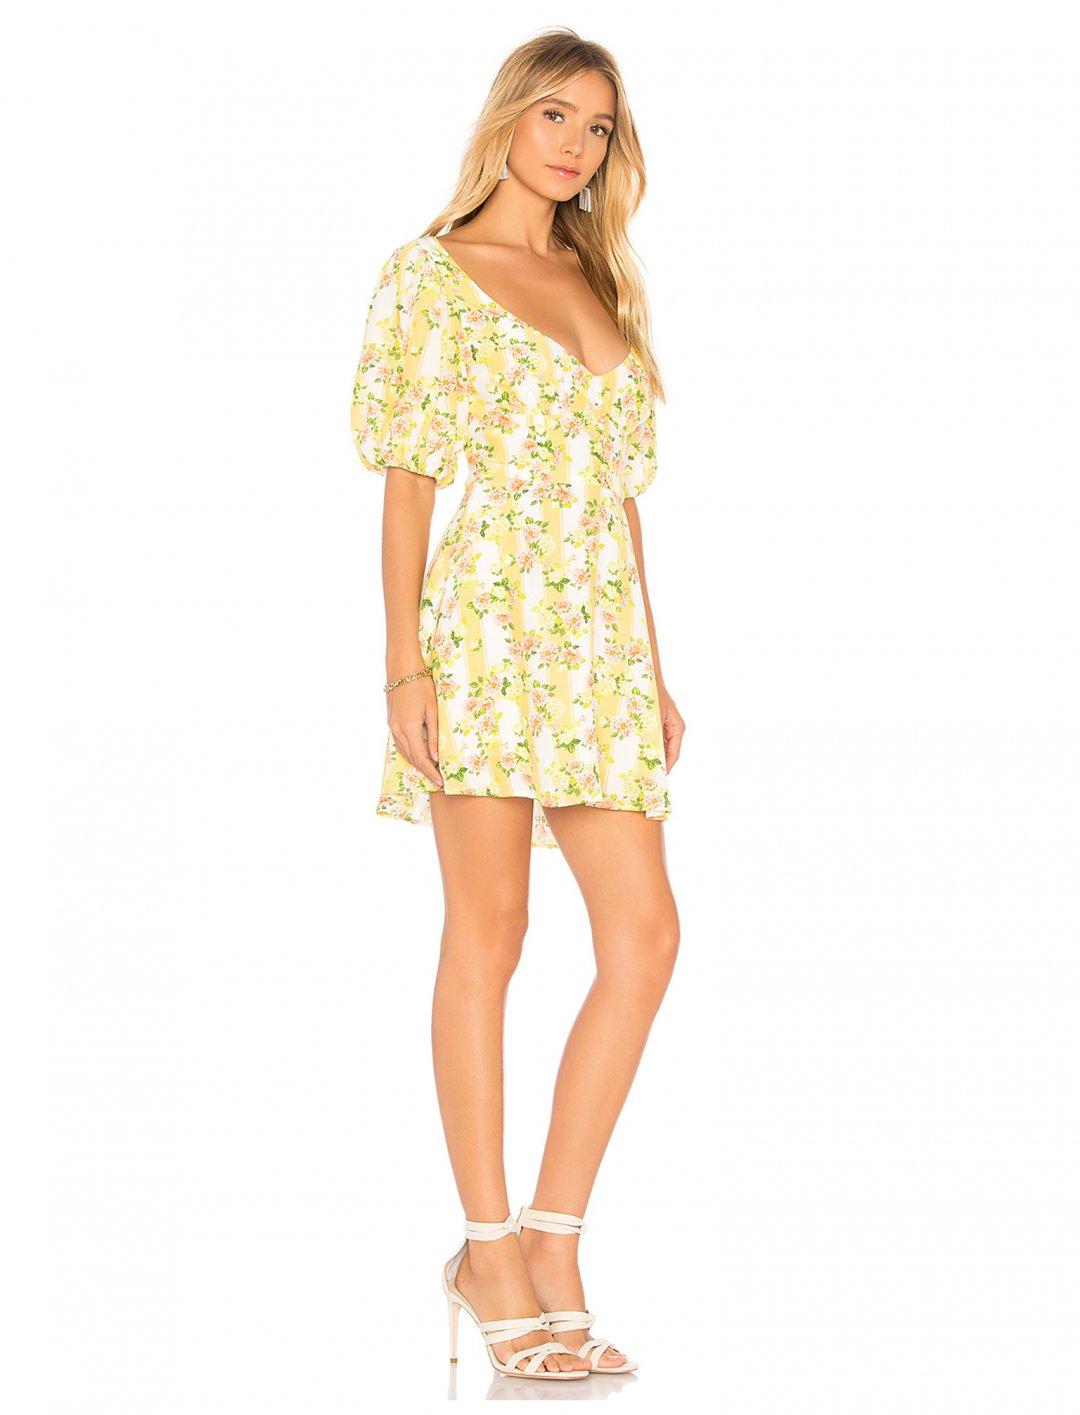 "Camila Cabello's Mini Dress {""id"":5,""product_section_id"":1,""name"":""Clothing"",""order"":5}  For Love & Lemons"